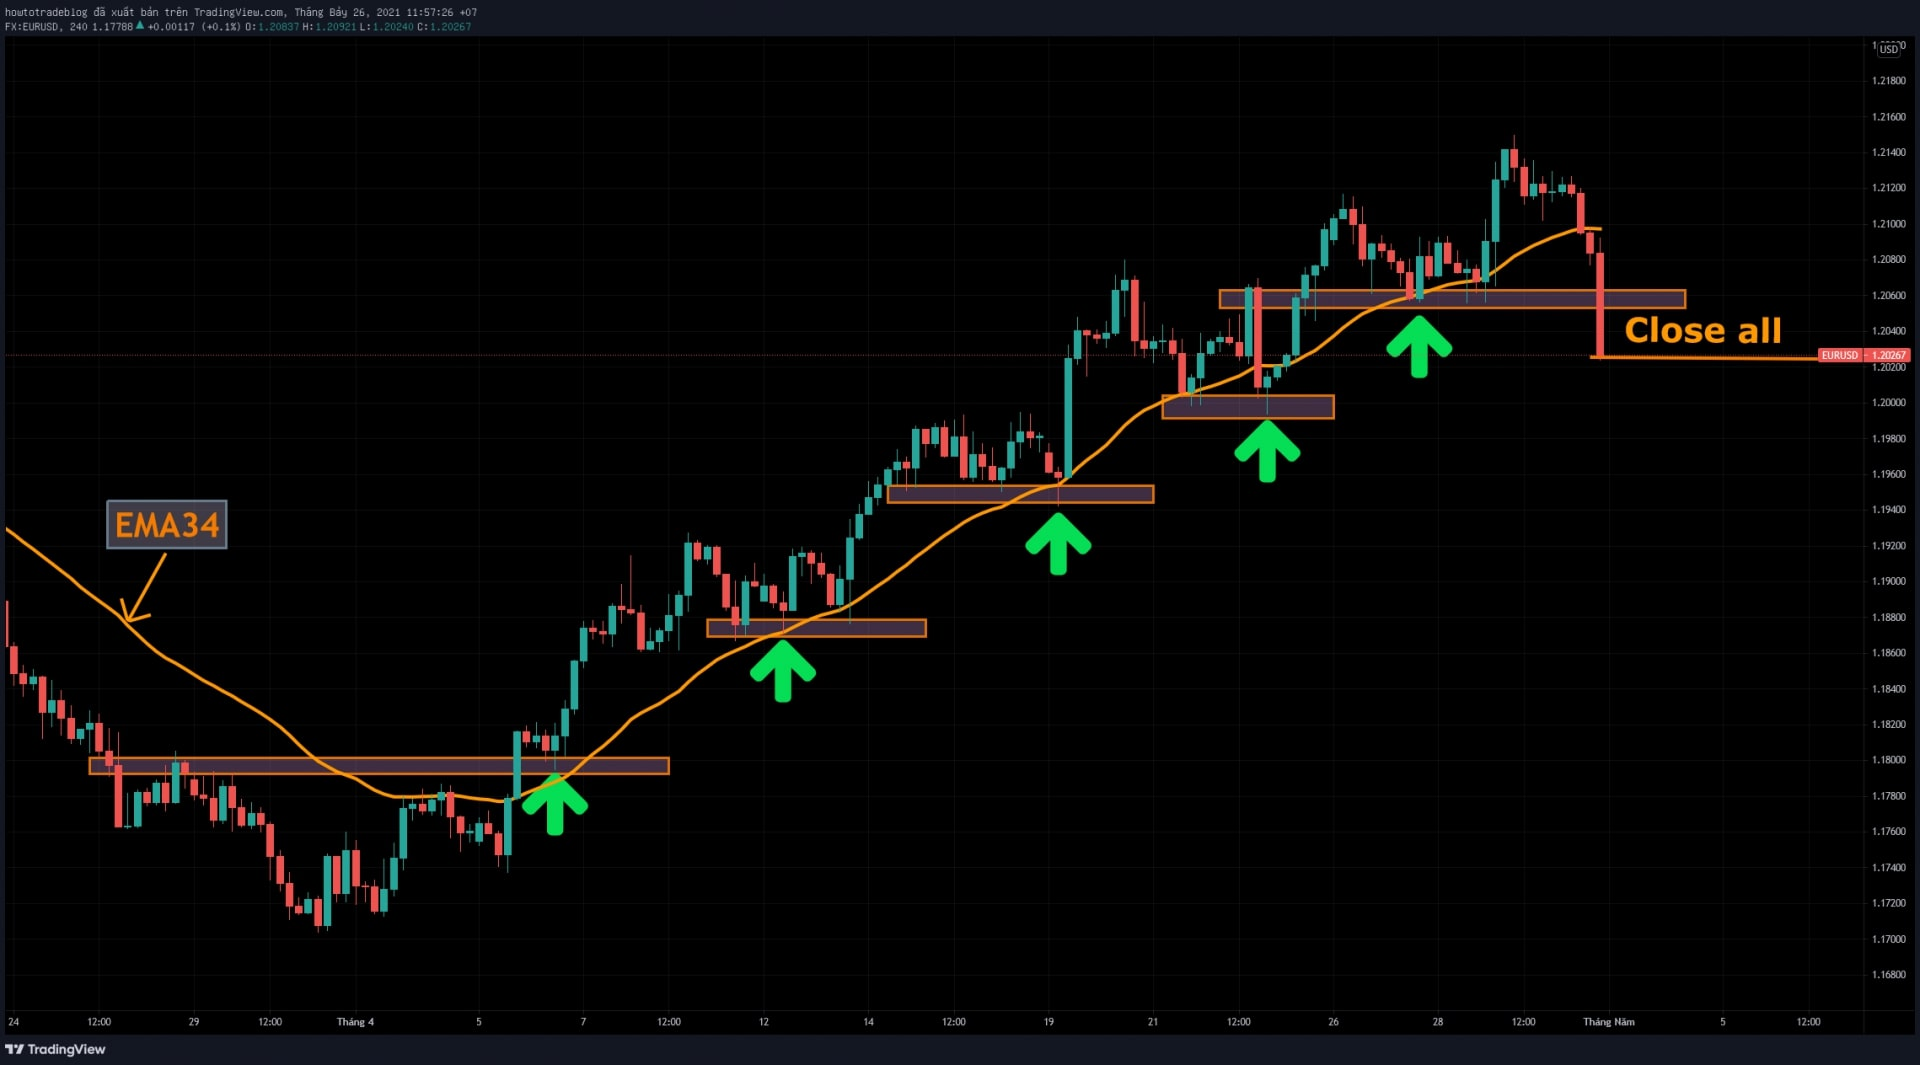 An example of Profit-holding with BUY positions